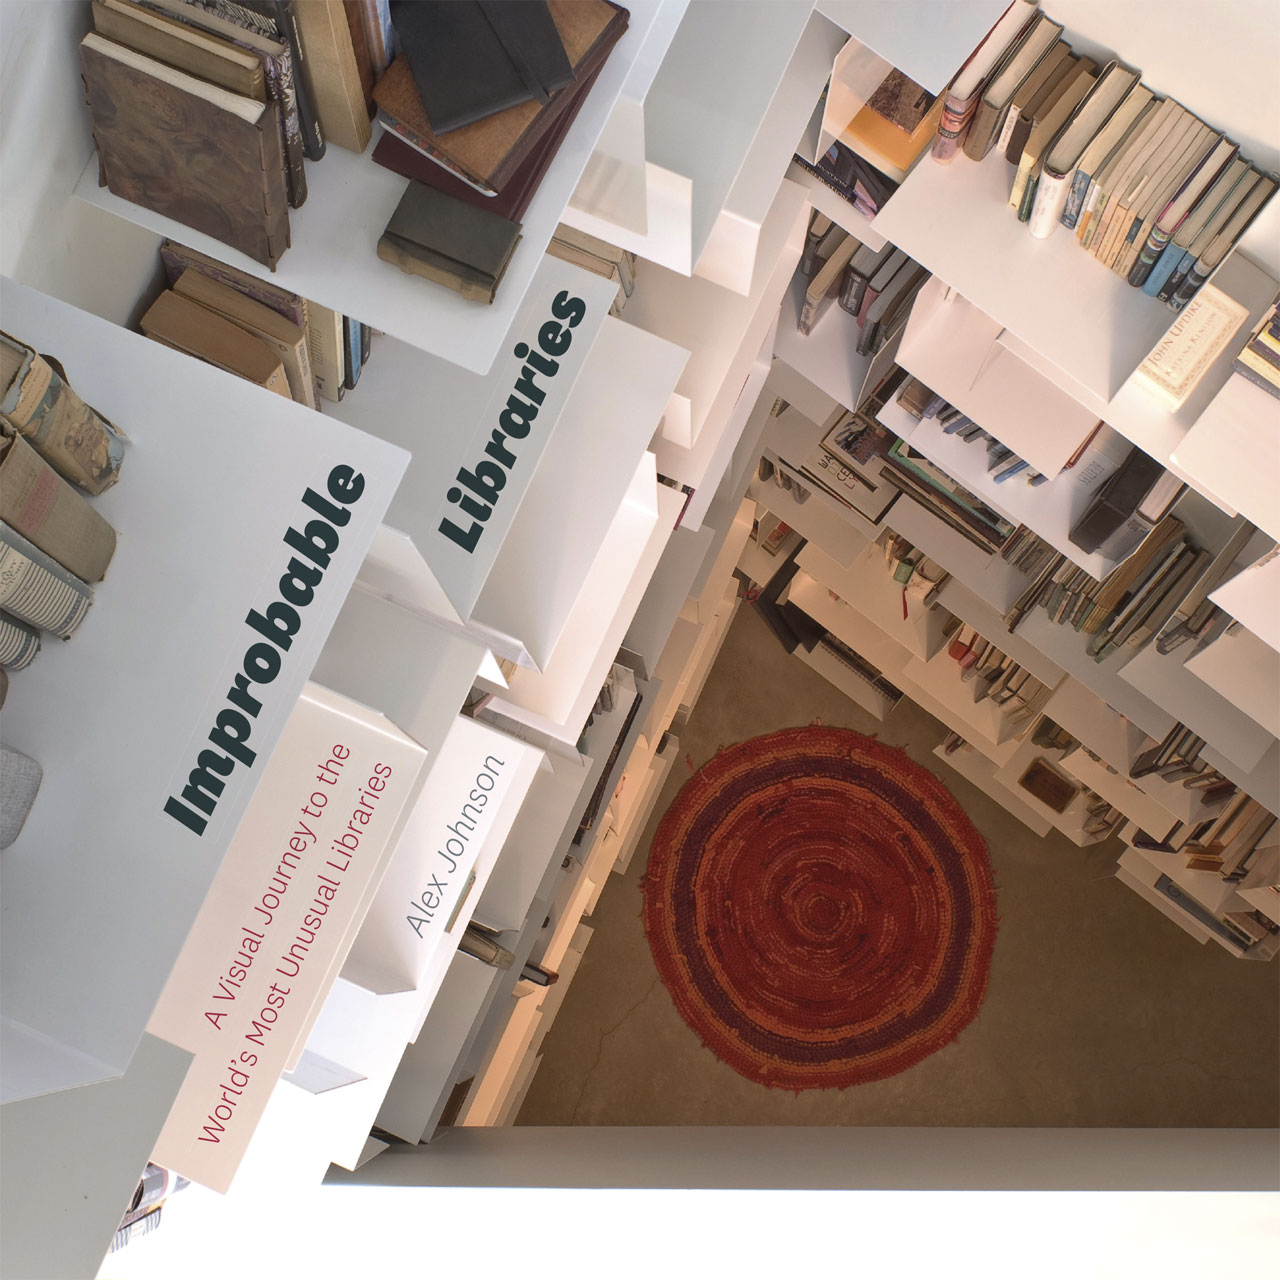 Improbable Libraries A Visual Journey To The Worlds Most Unusual